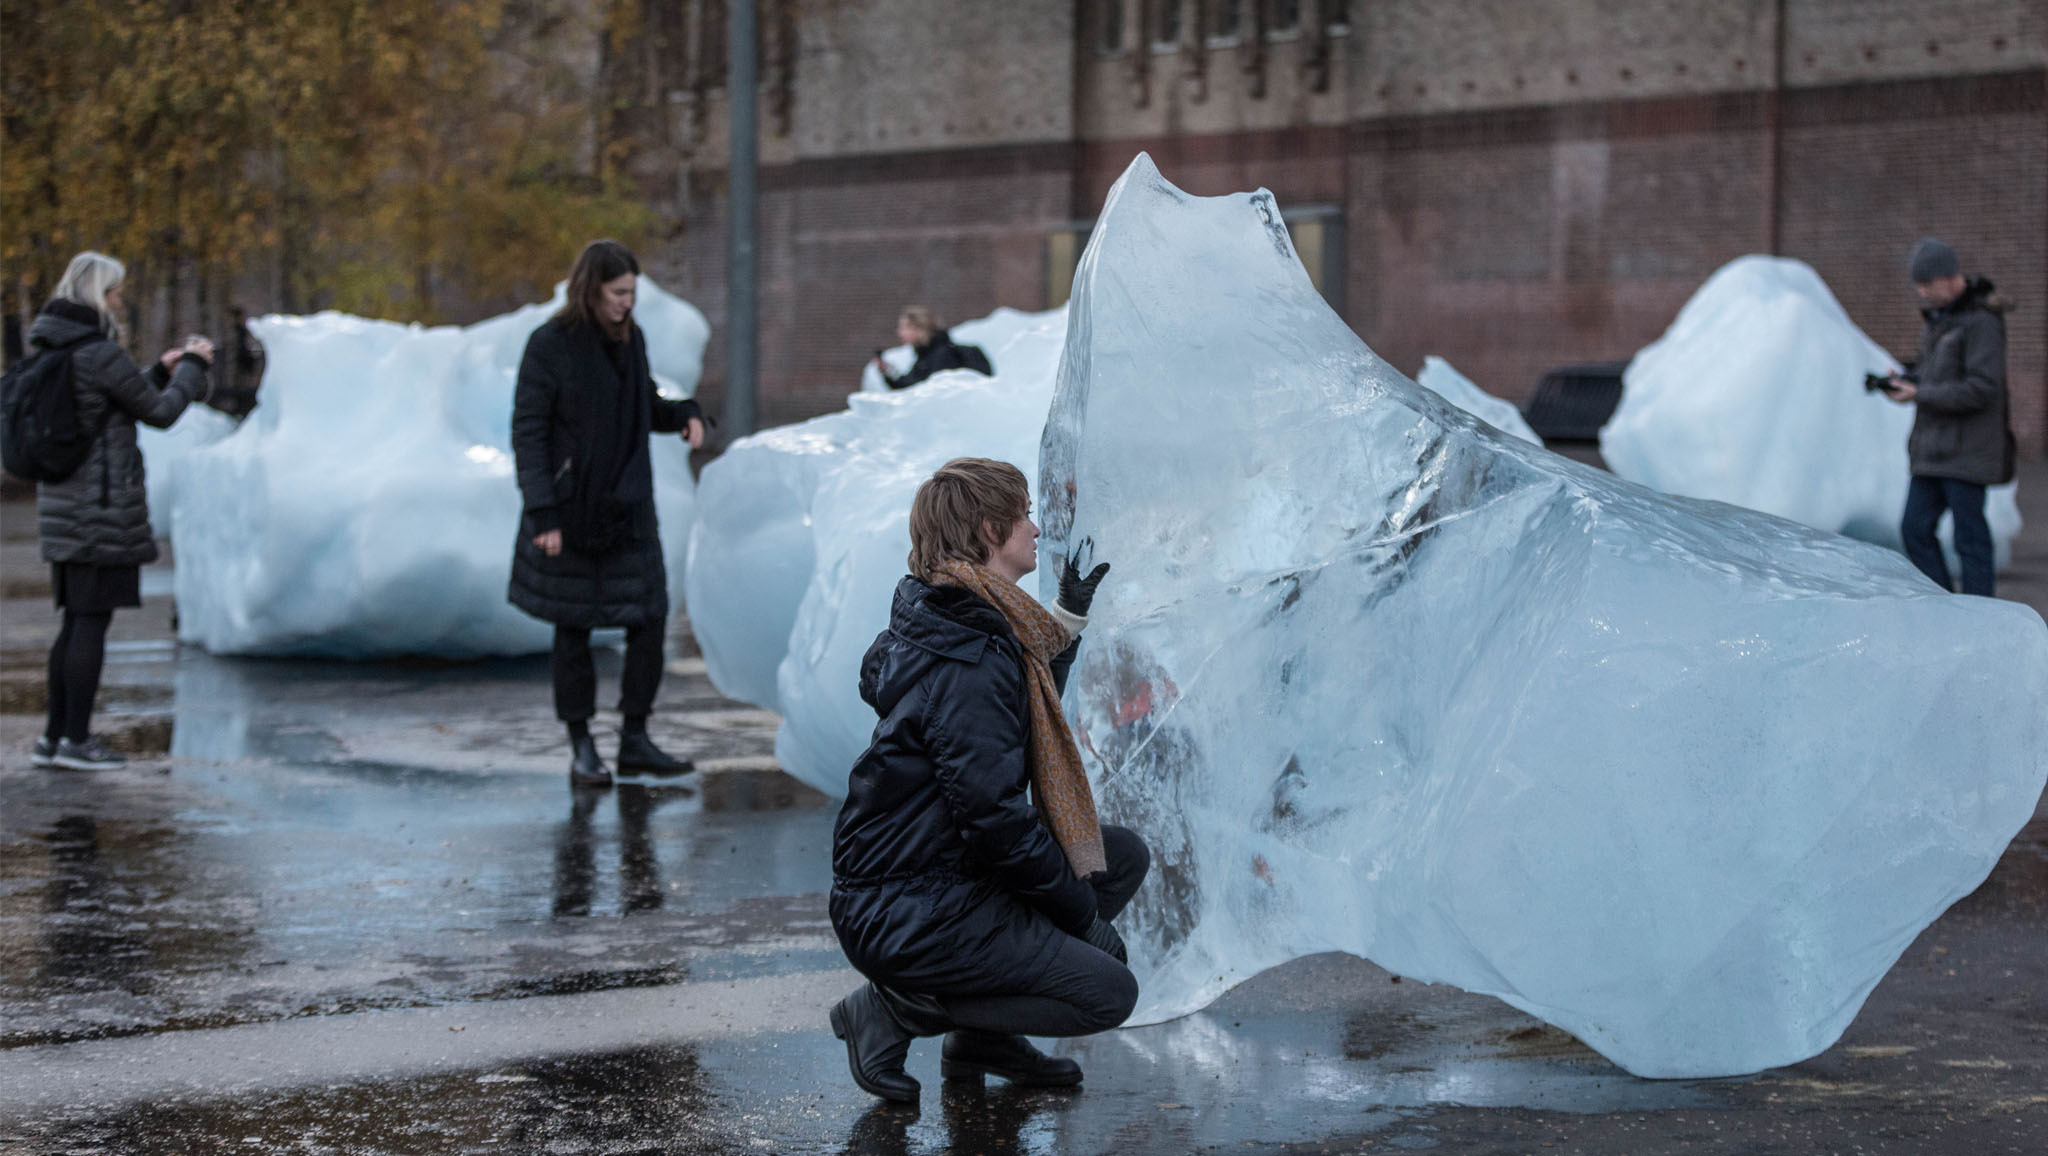 There are chunks of melting glacier ice outside Tate Modern